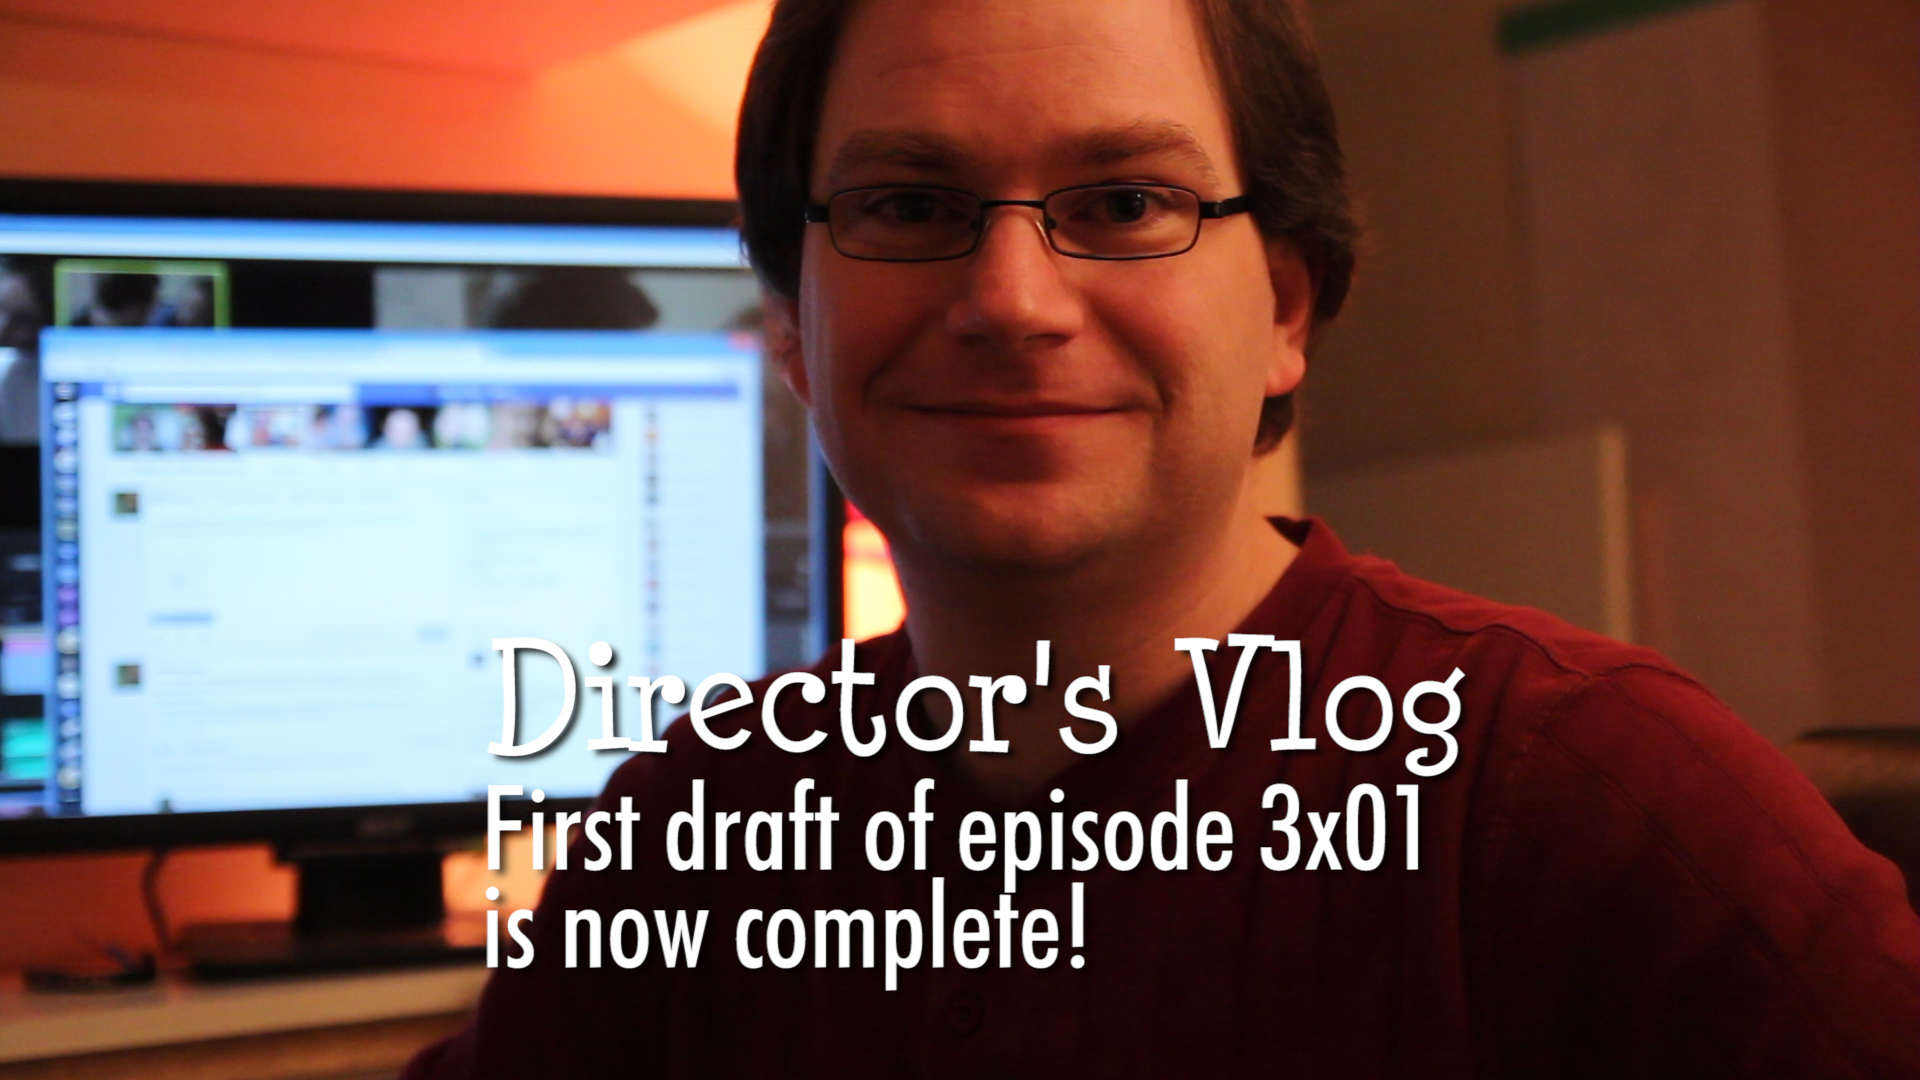 Director's Vlog: First draft of episode 3.01 complete!